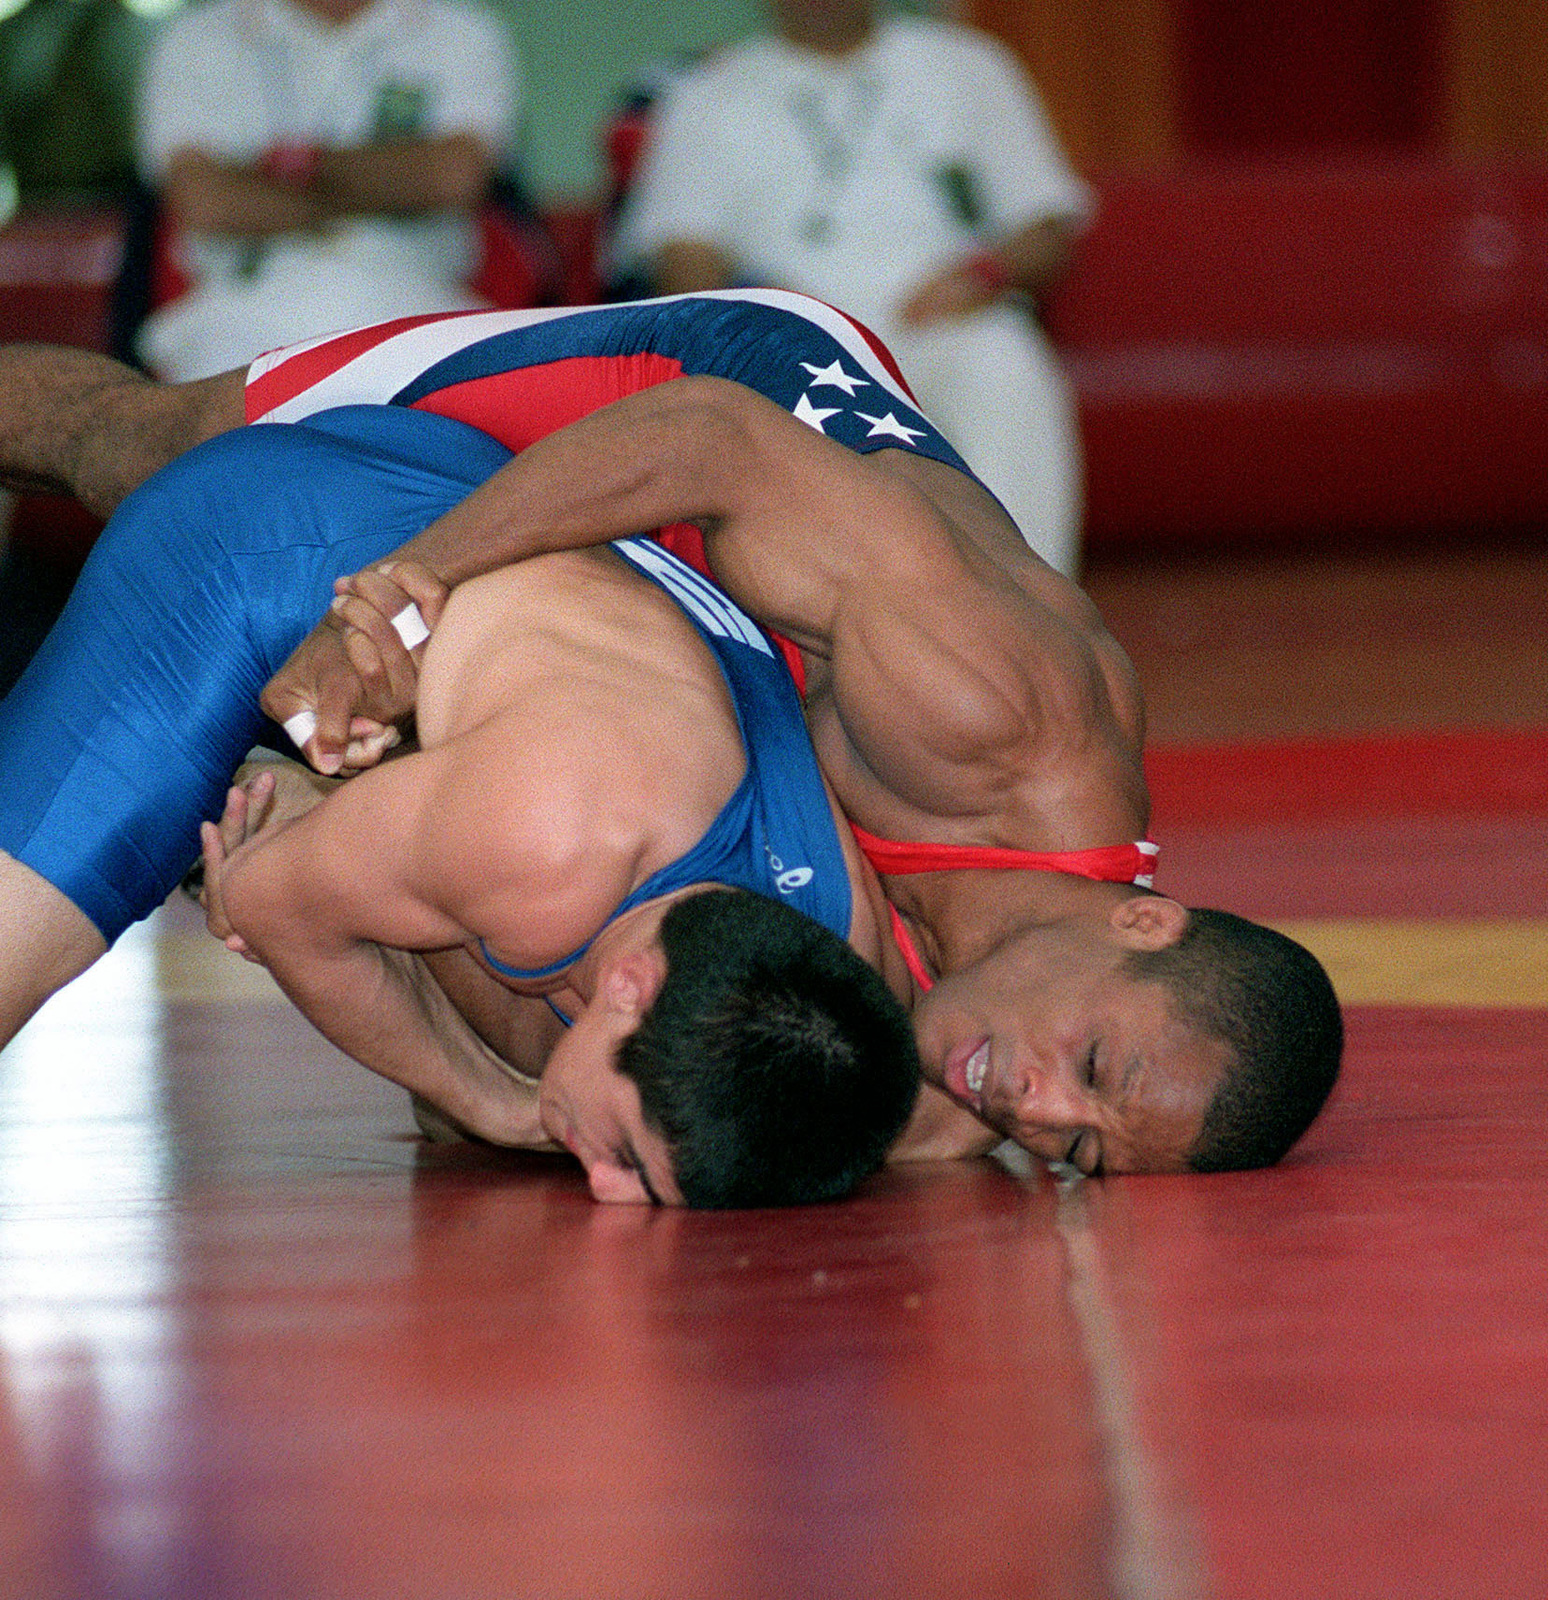 US Marine Sergeant Duaine Martin (Right), Headquarters and Service Battalion, Marine Corps Base, Quantico, Virginia, attempts to score during the 58-Kg weight division Gold Medal match against Cerpiz Papagan, of Turkey, at the 19th World Military Wrestling Championships held at Camp Lejeune Marine Corps Base, North Carolina, on October 26th, 2000. The Conseil International du Sport Militaire 19th World Military Wrestling Championship (CISM) is a multi-national wrestling tournament hosted by Camp Lejeune from Oct. 25-29. Competing nations include: Brazil, China, Estonia, Finland, Germany, Greece, Slovakia, Turkey, the United States, and Vietnam. The wrestlers will be competing in two ...